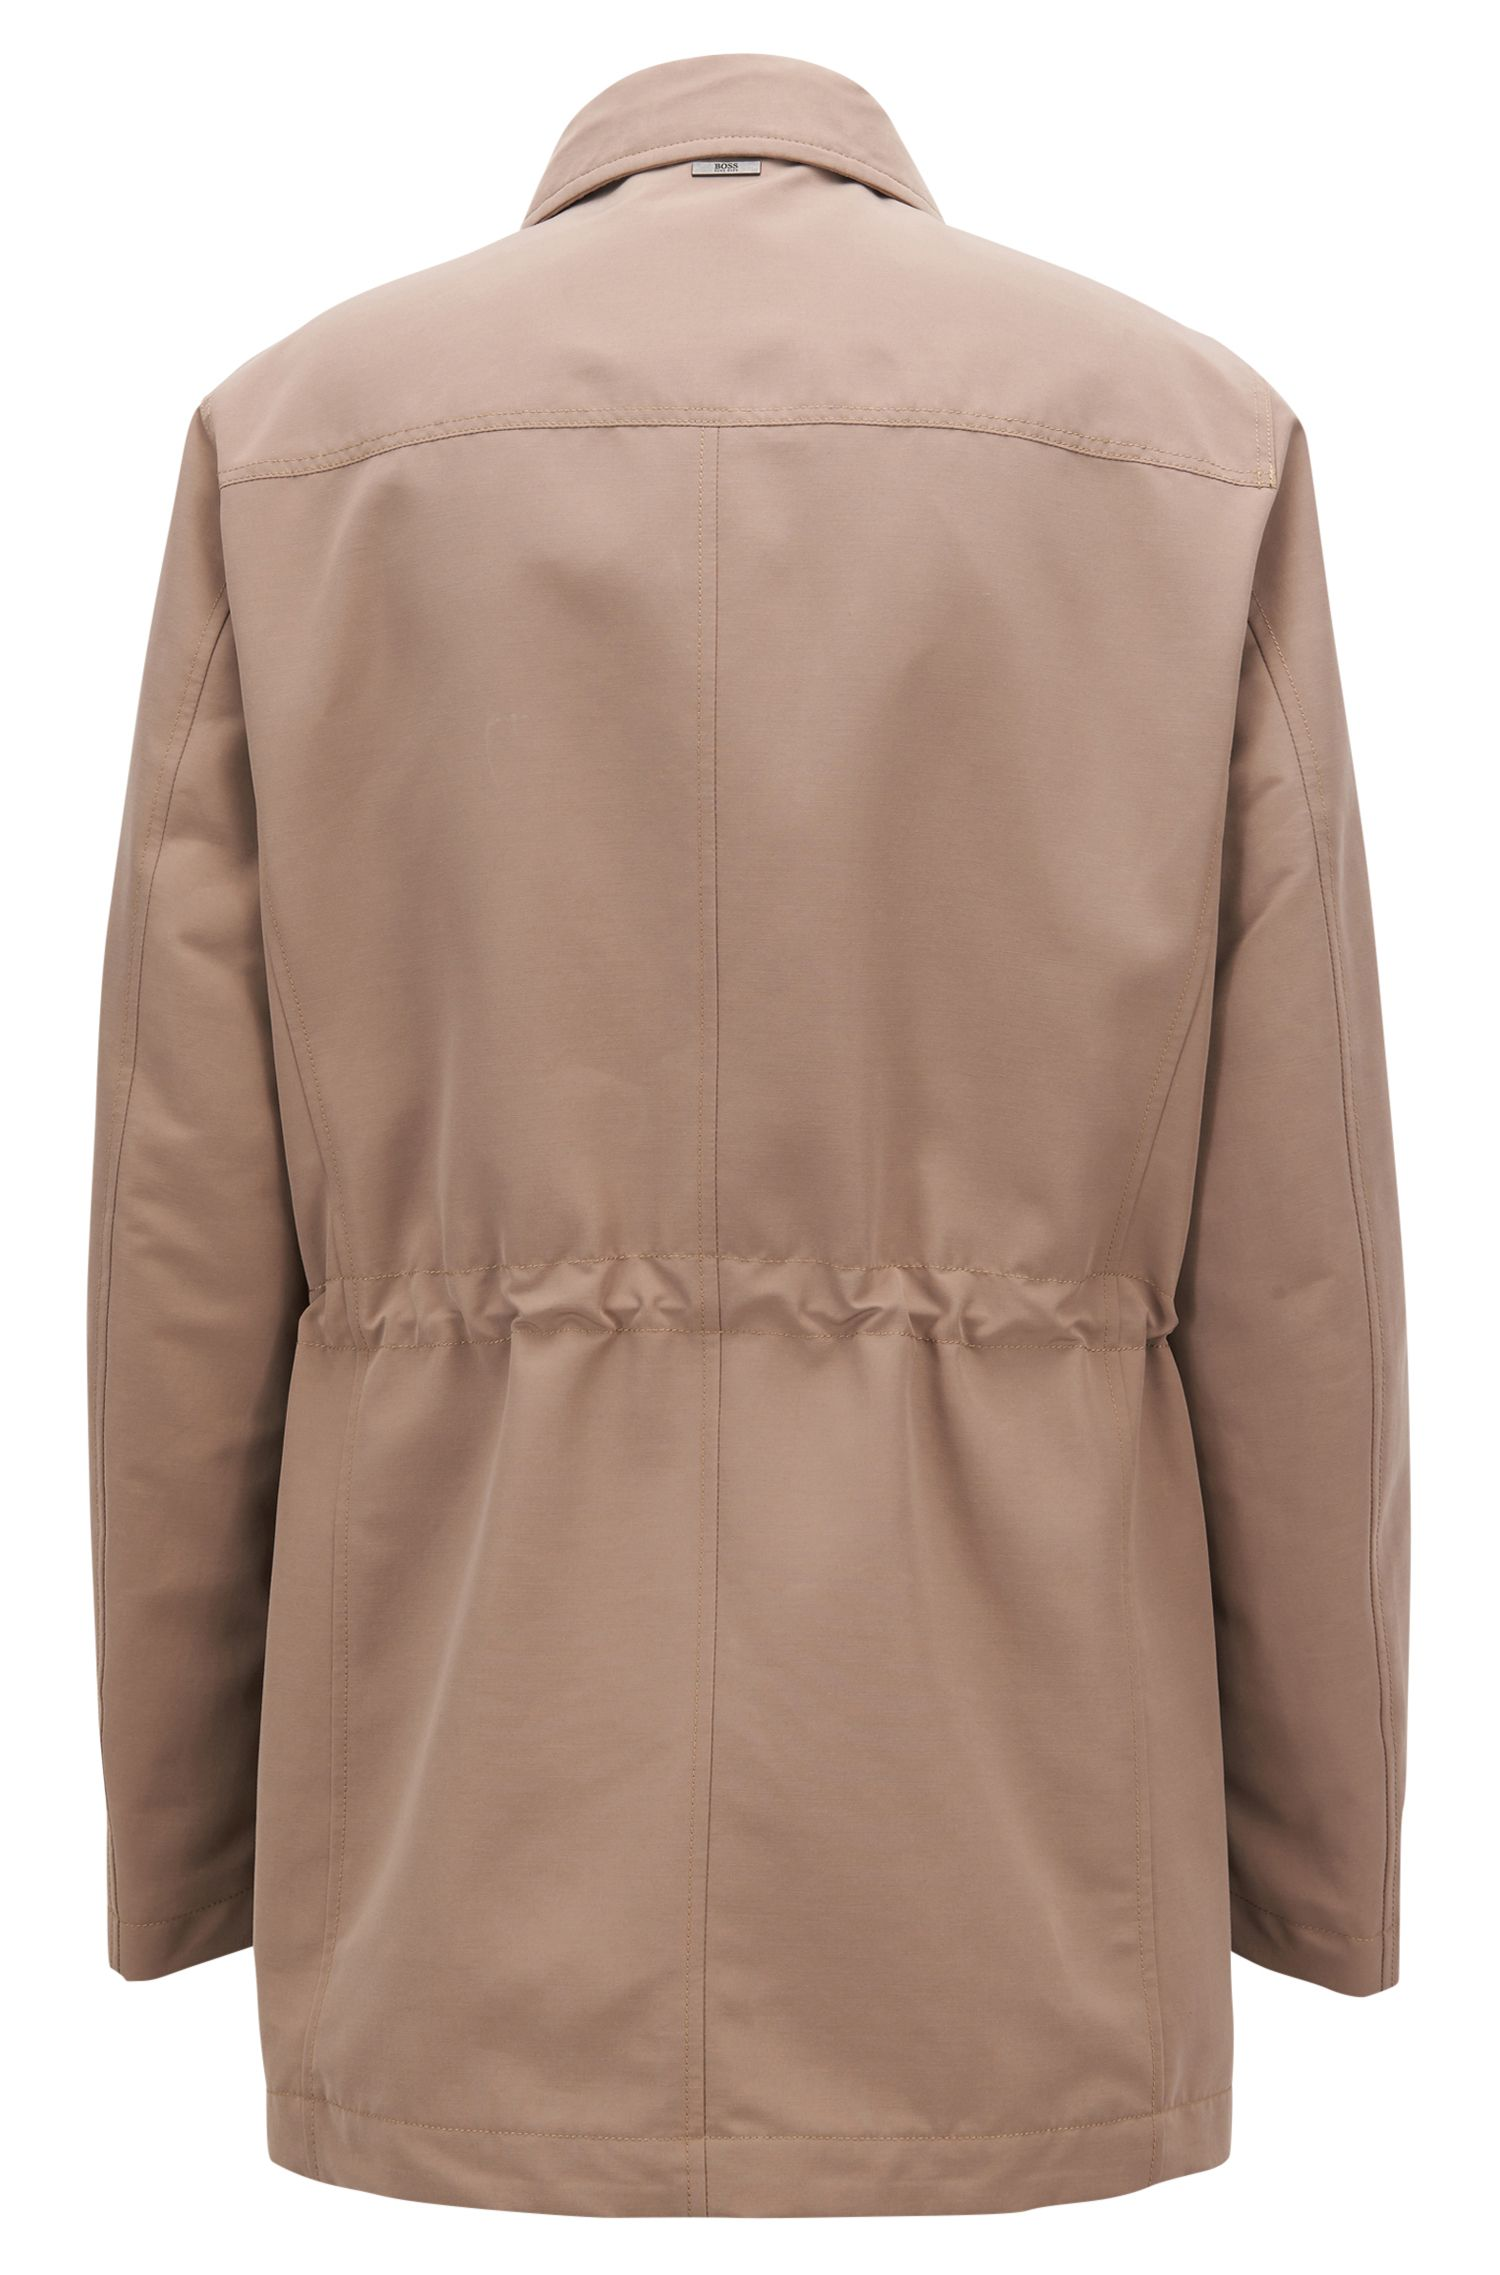 Classic Water Repellent Car Coat | 'Cider', Beige